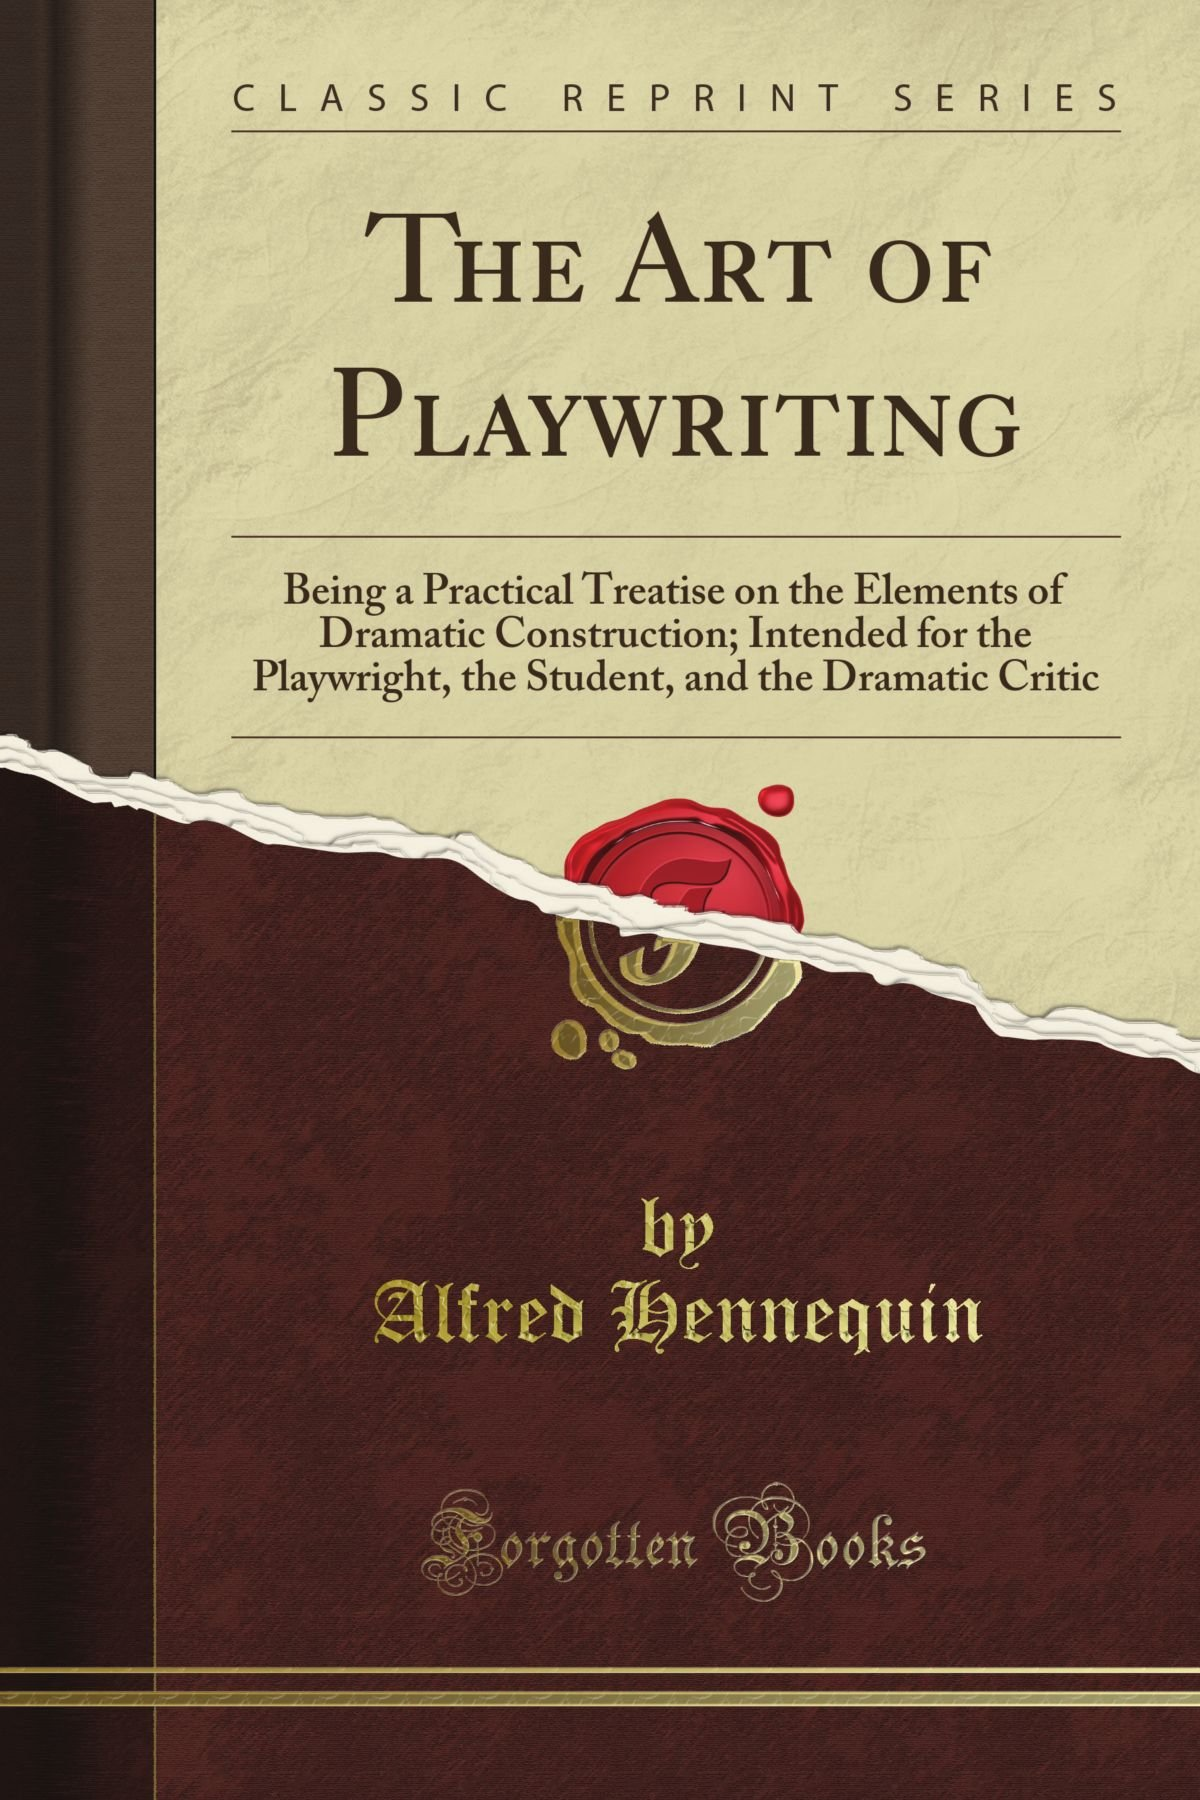 Read Online The Art of Playwriting: Being a Practical Treatise on the Elements of Dramatic Construction; Intended for the Playwright, the Student, and the Dramatic Critic (Classic Reprint) pdf